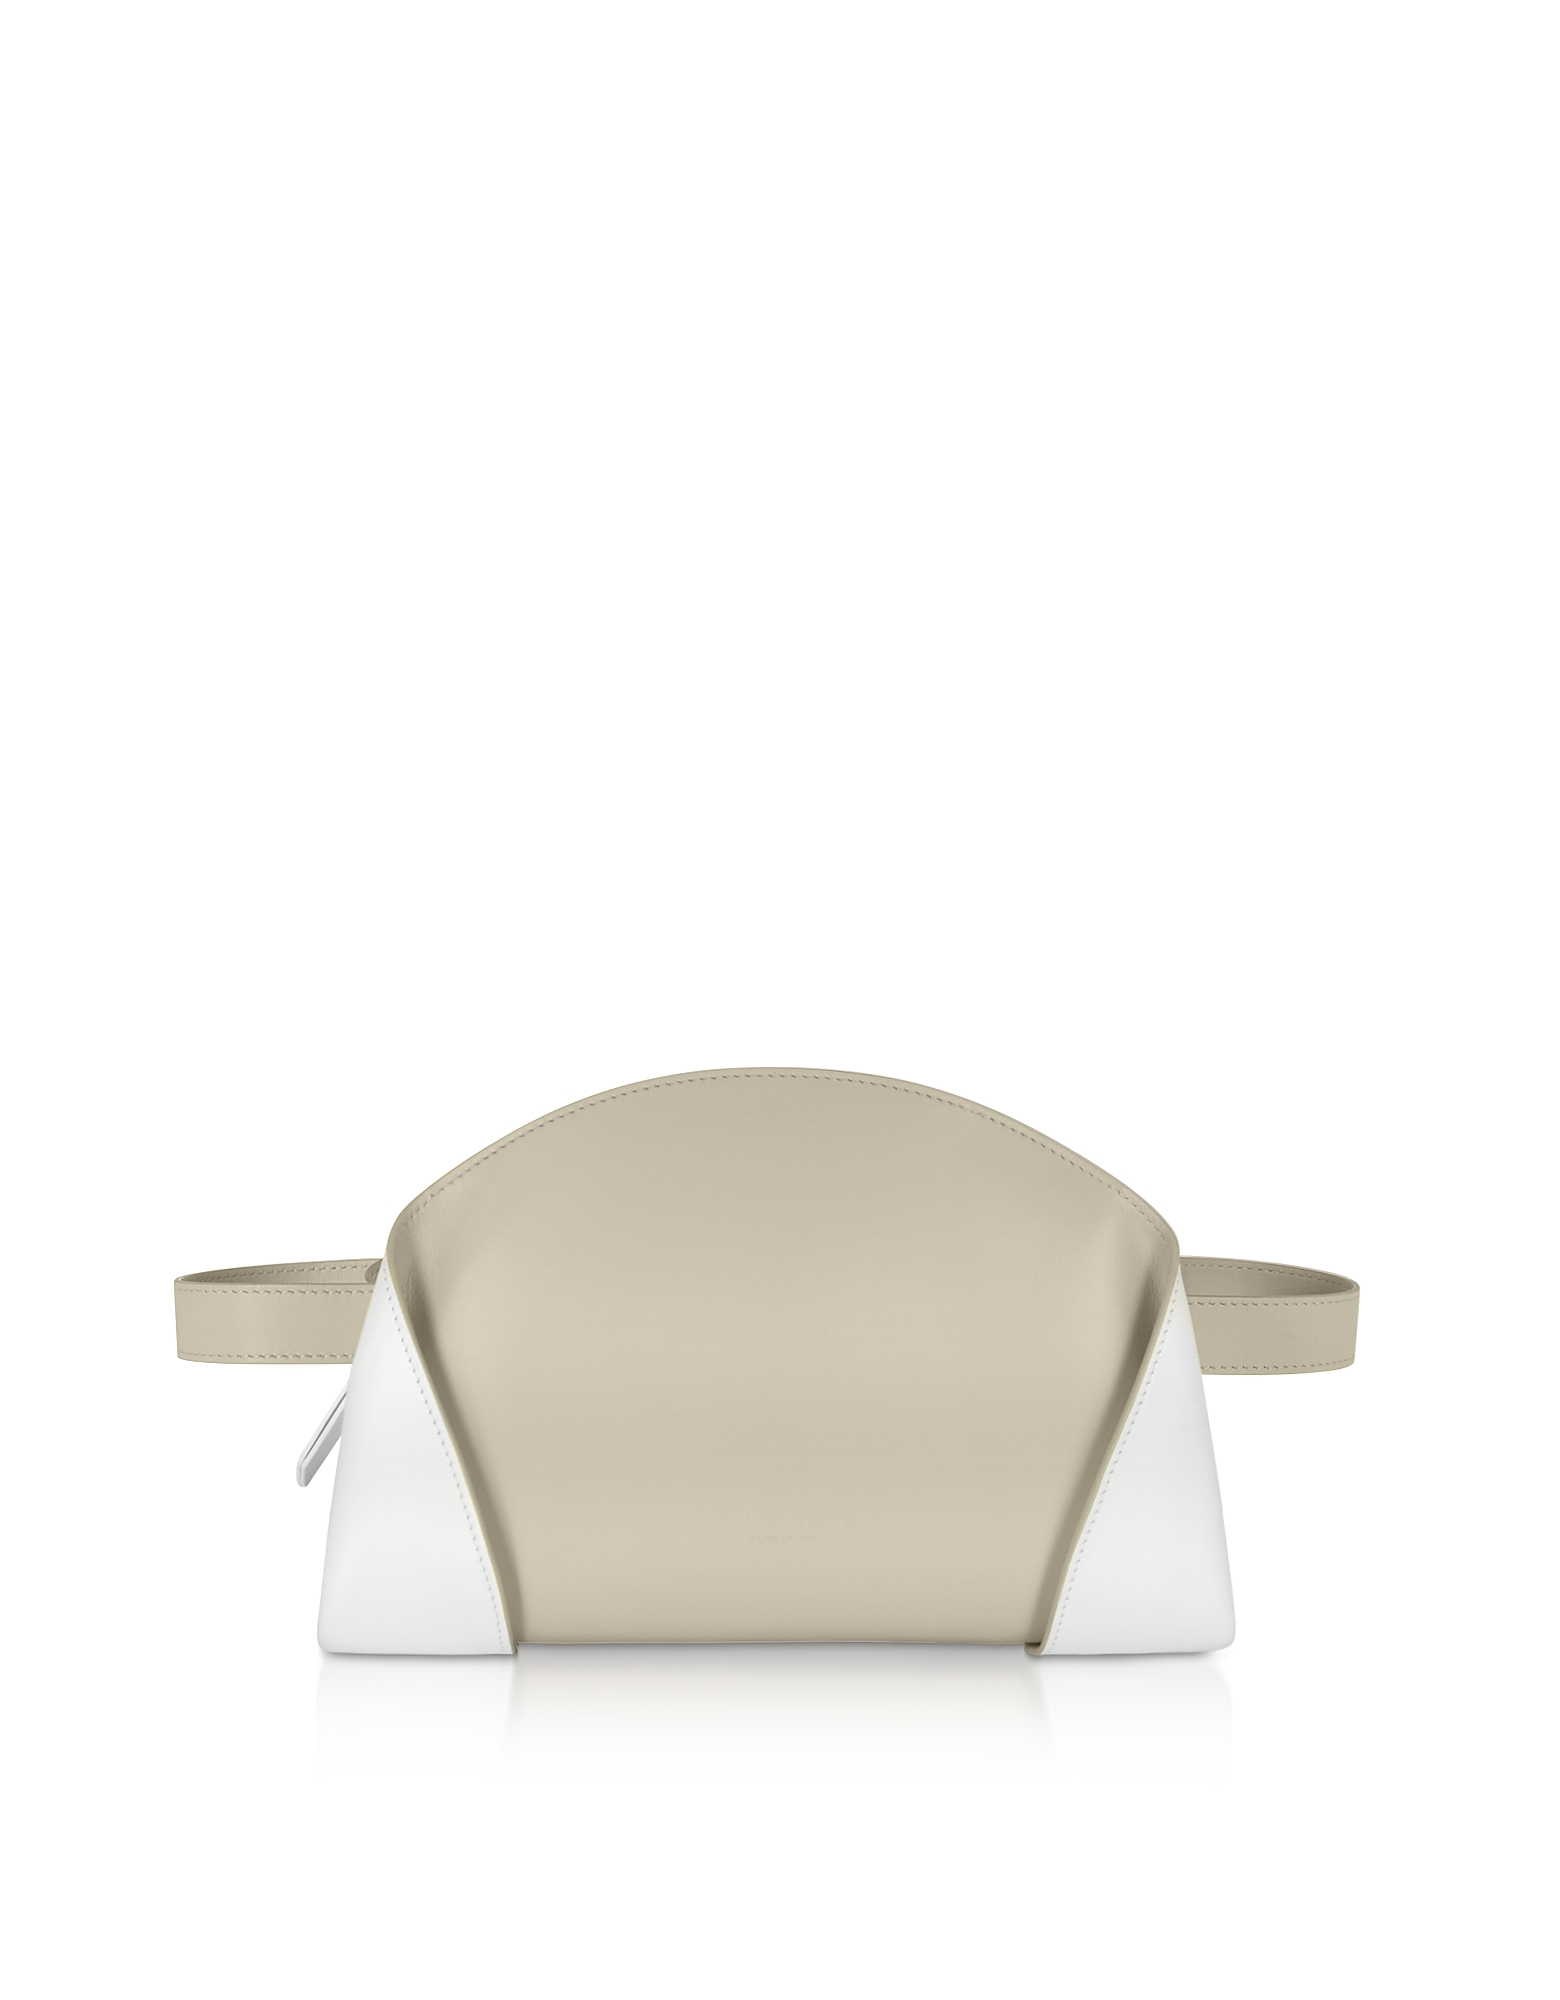 Giaquinto Designer Handbags, Egret White Freya Belt Bag